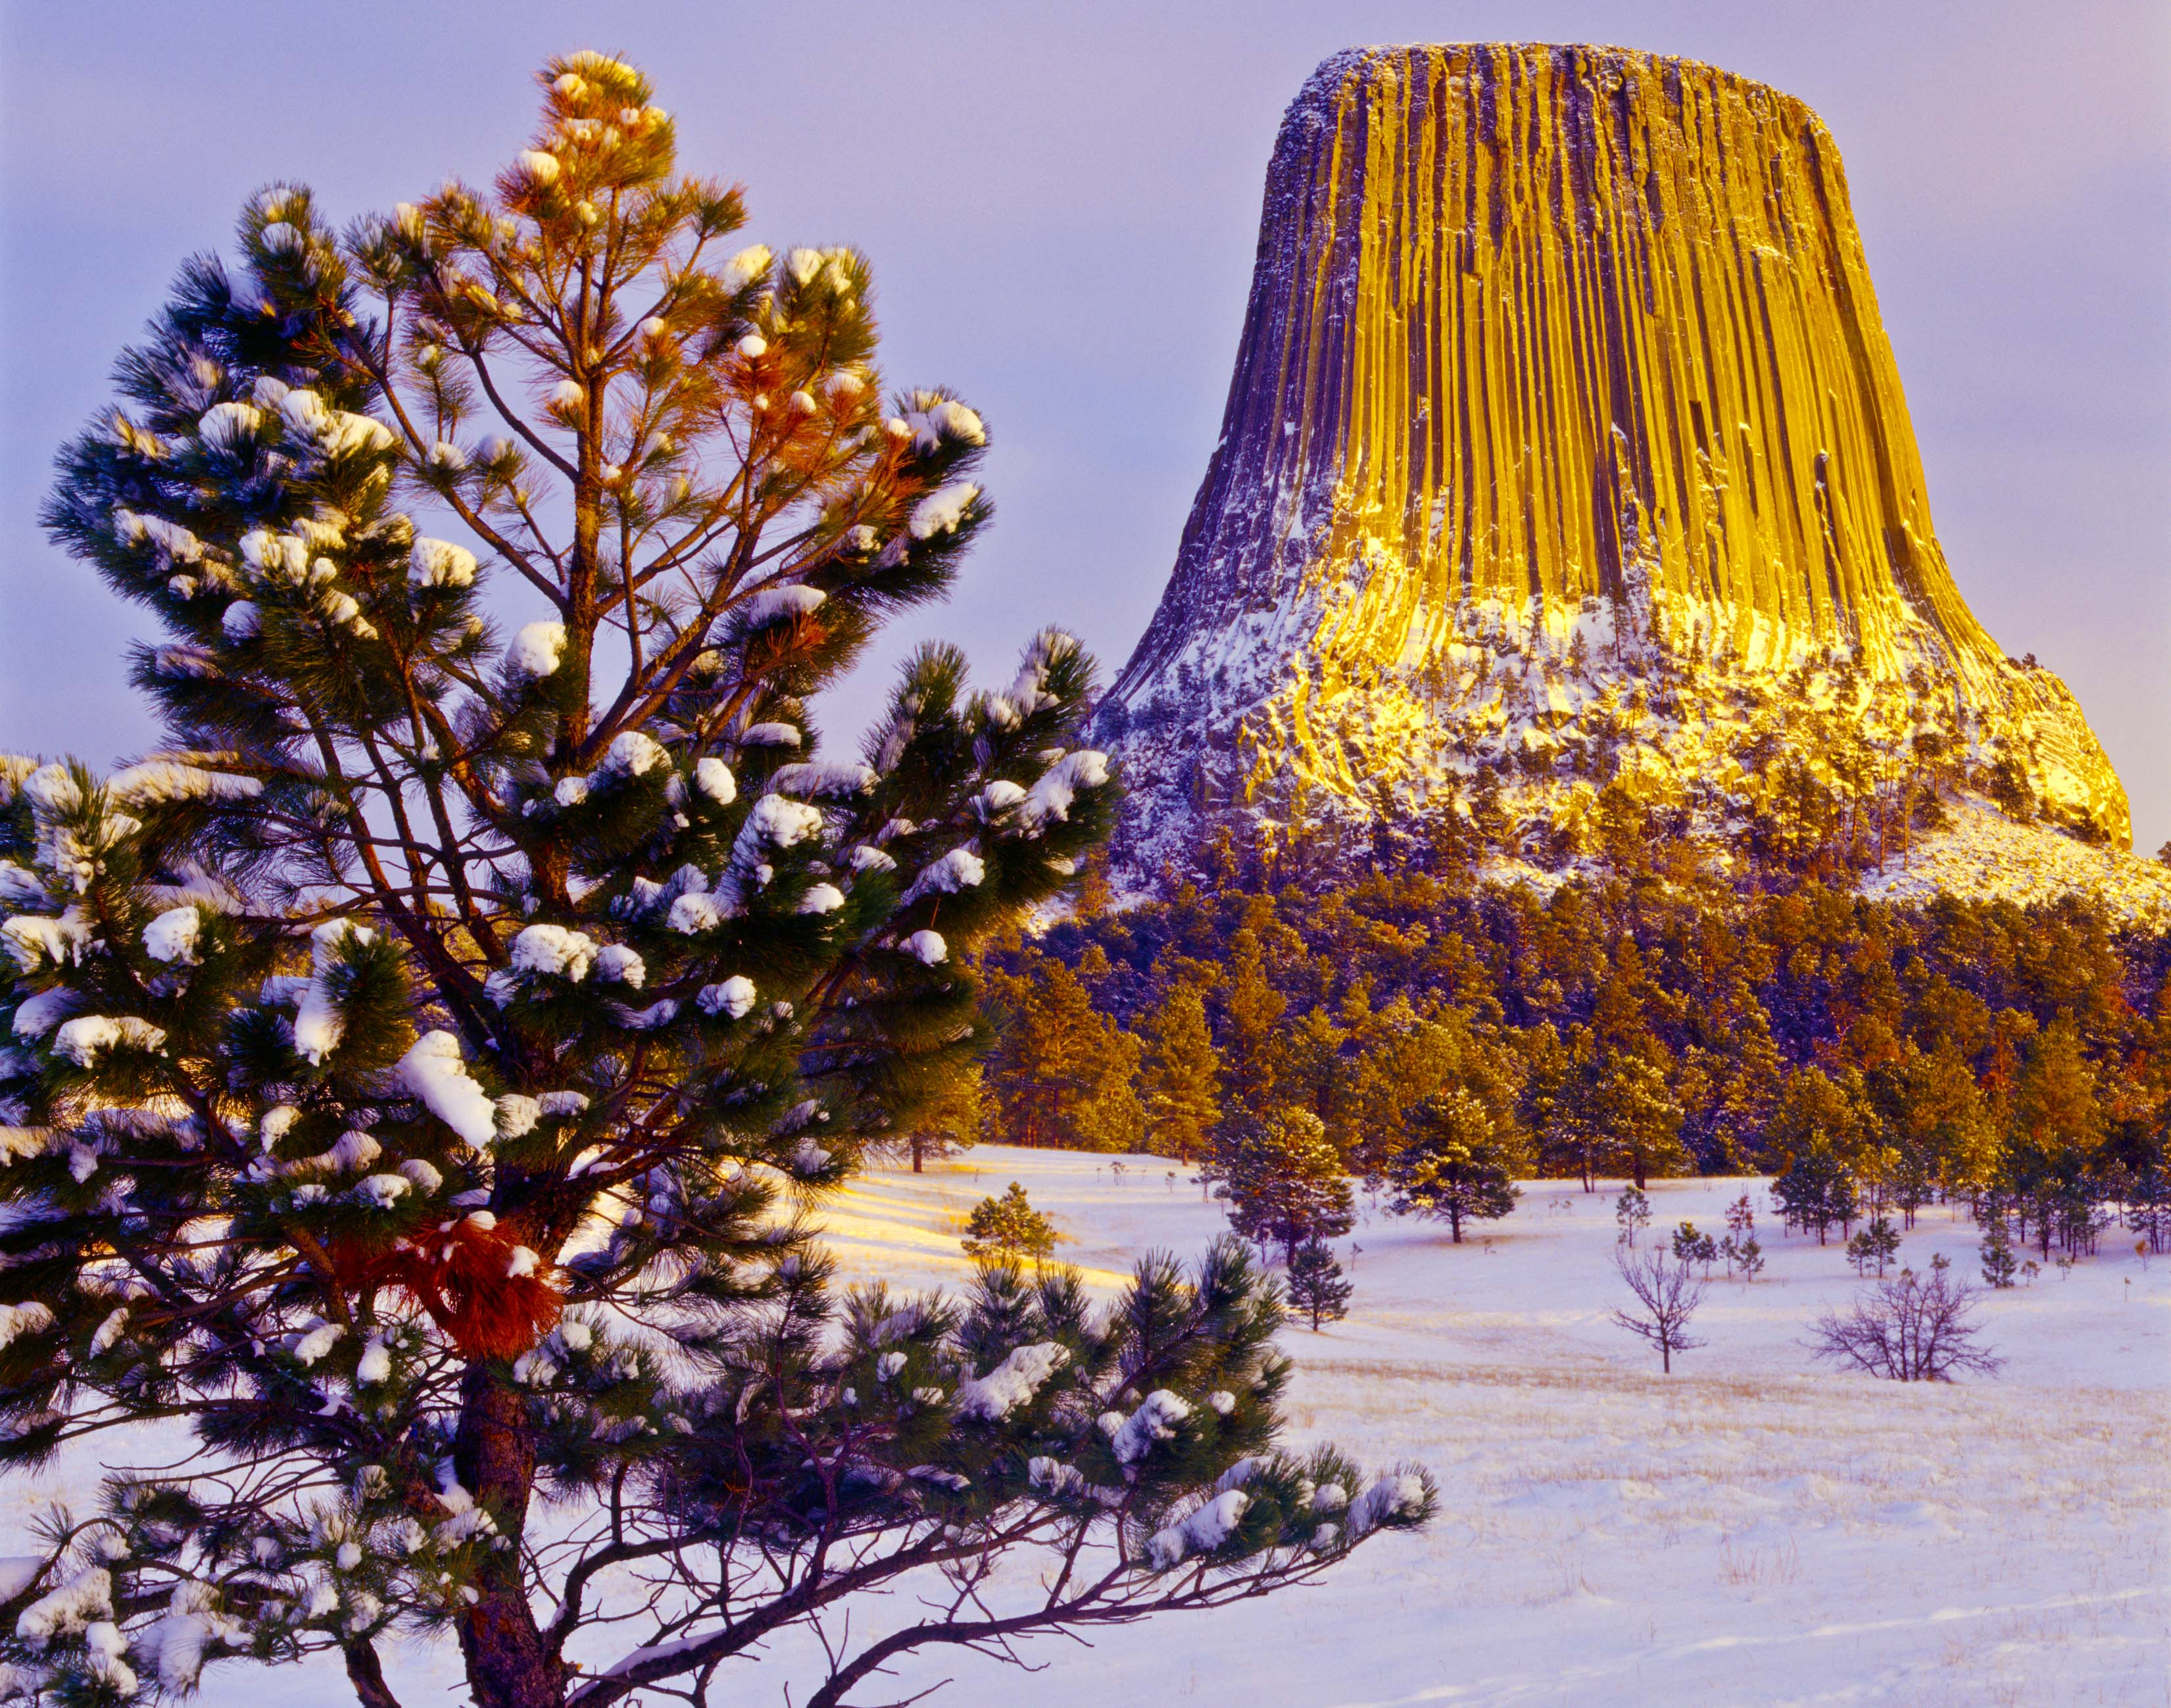 Devils Tower at Winter Sunset Photographed by Tom Till